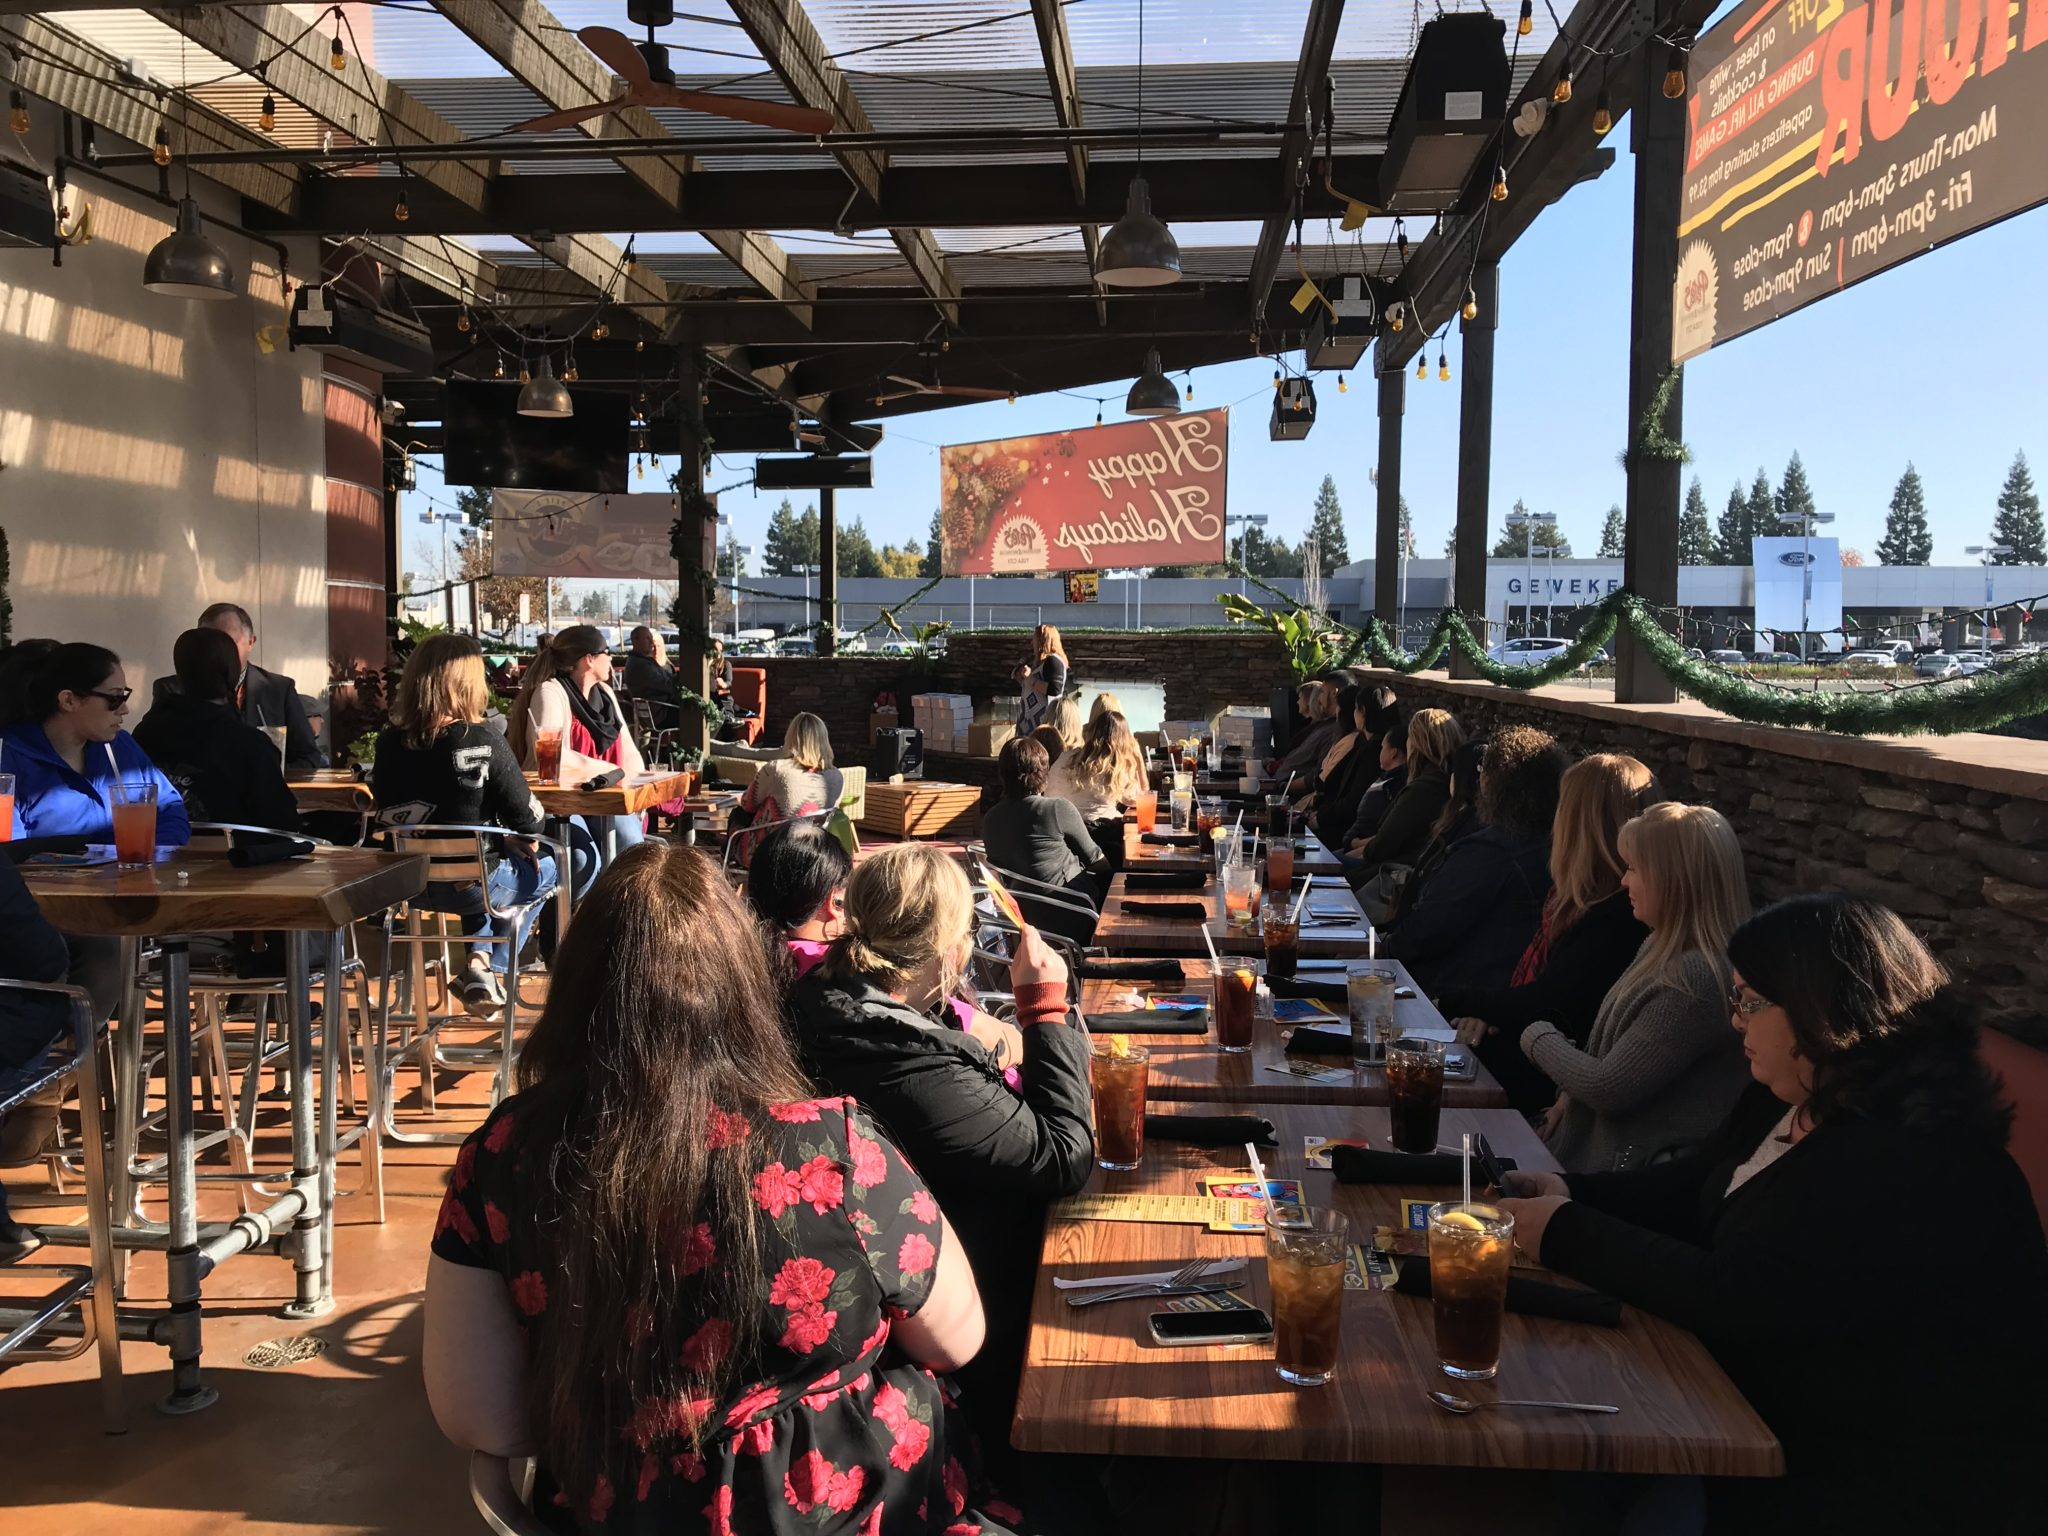 Pete's outdoor seating area makes a nice venue for parties, lunch meetings and gatherings.